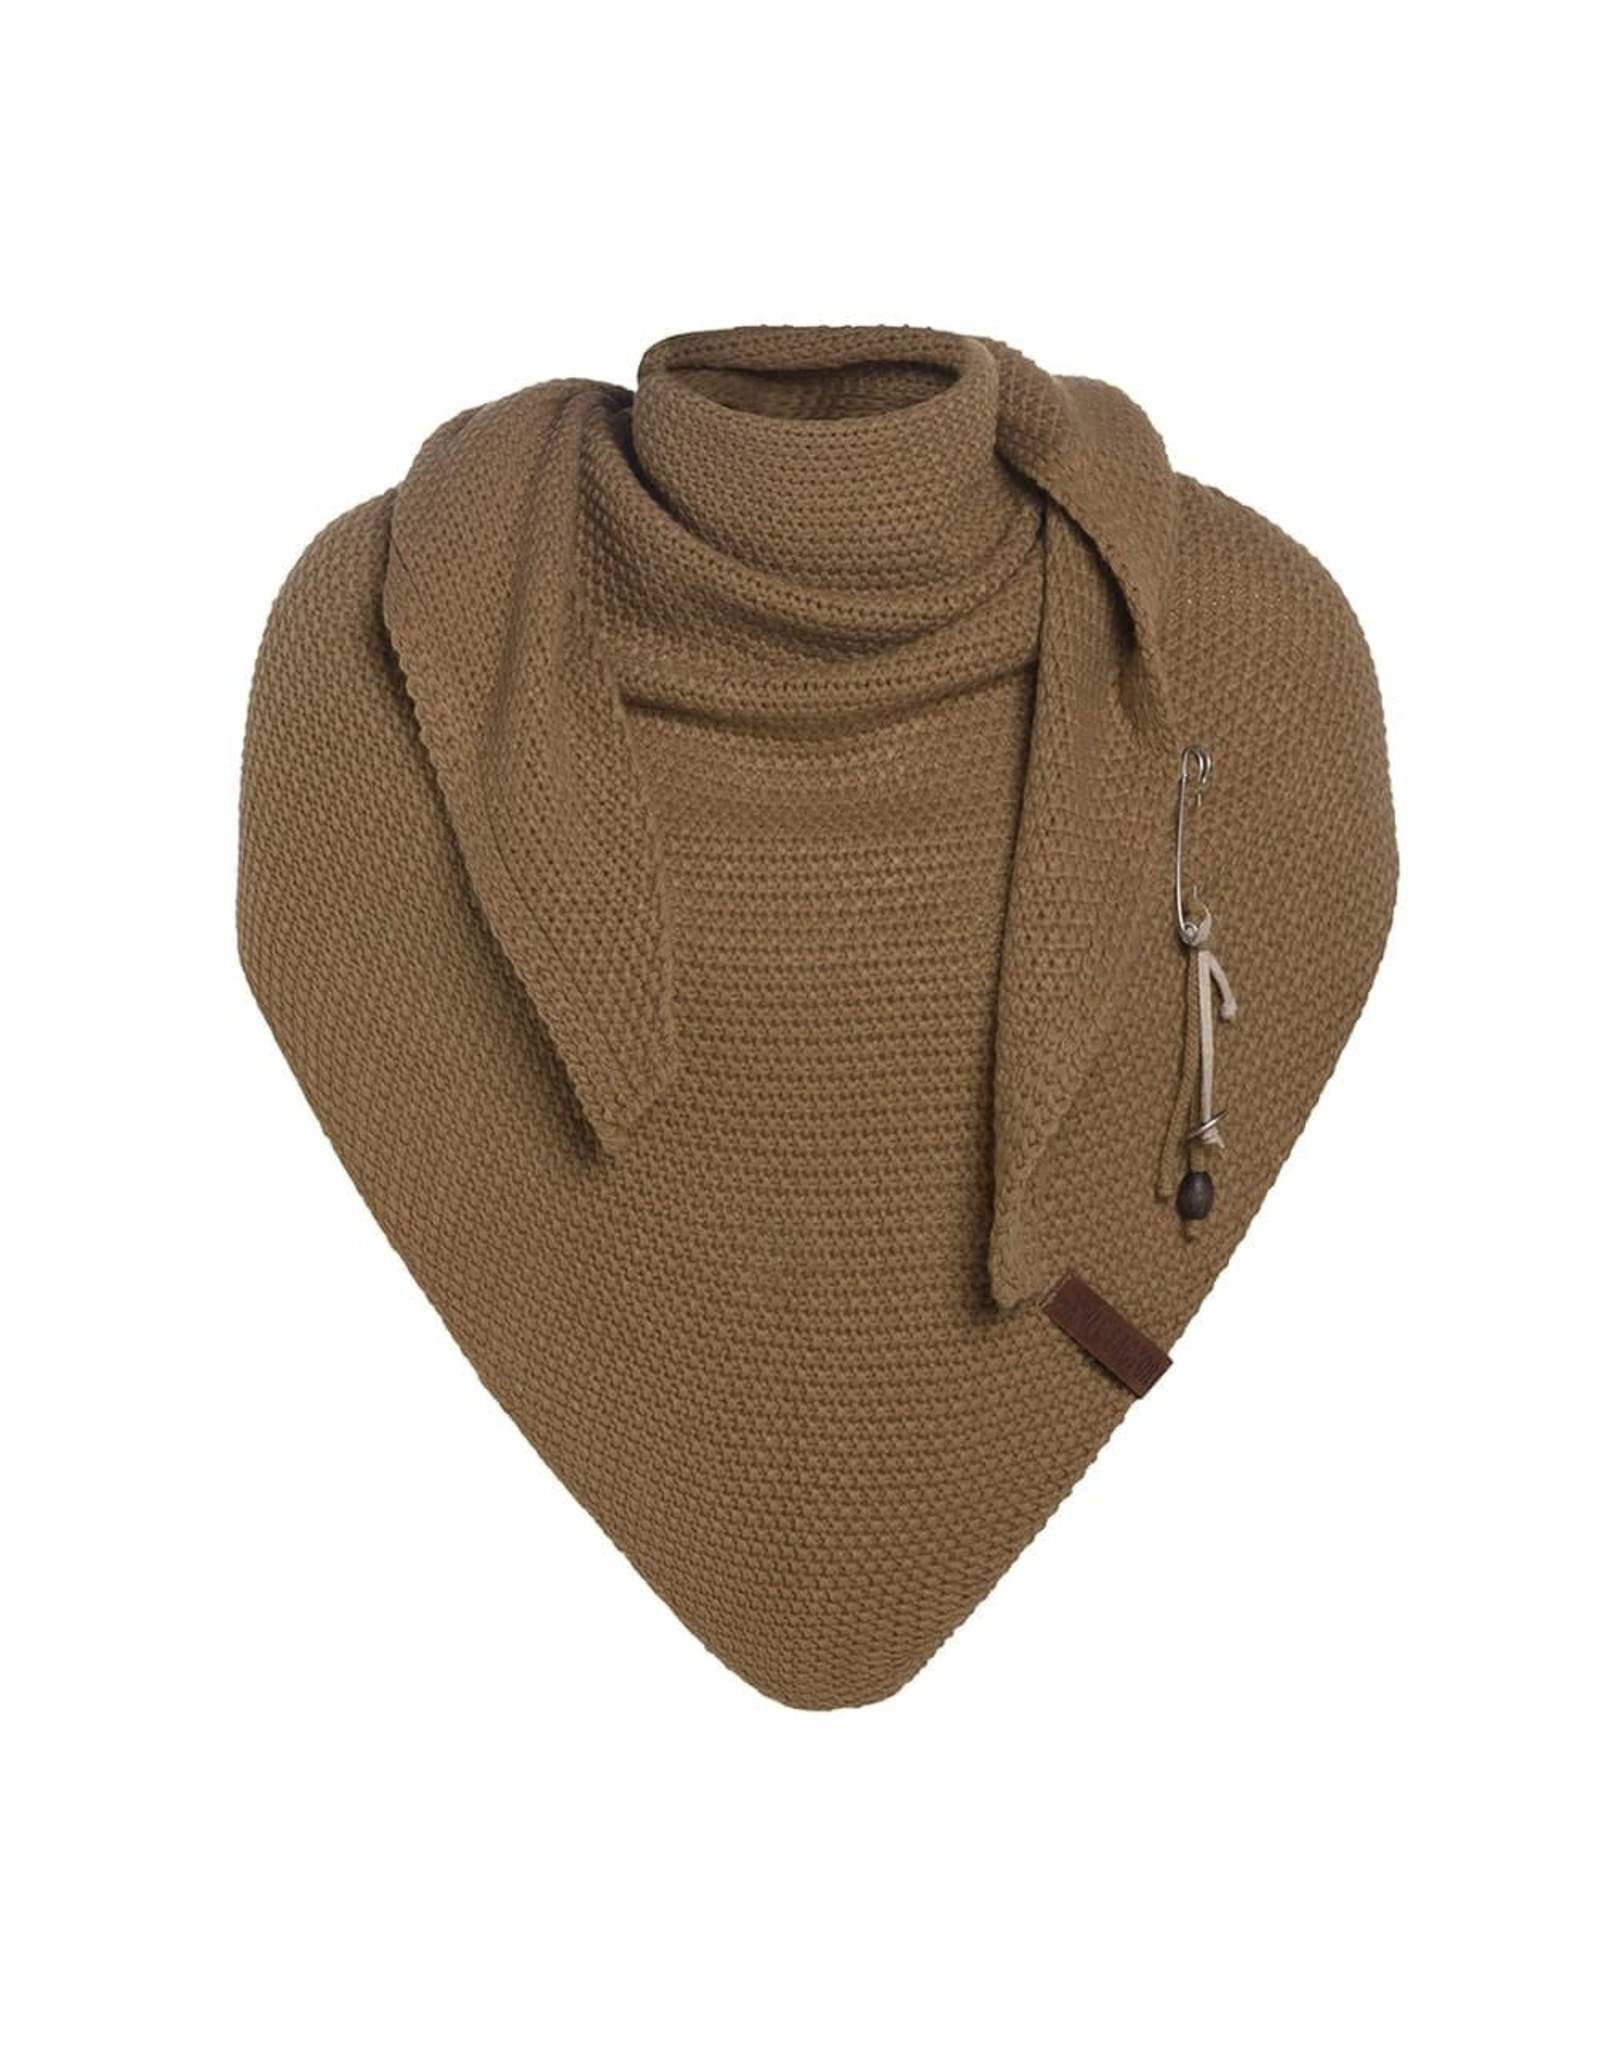 Knit Factory Knit Factory 1206020 Coco Triangle Scarf 190x85 New Camel